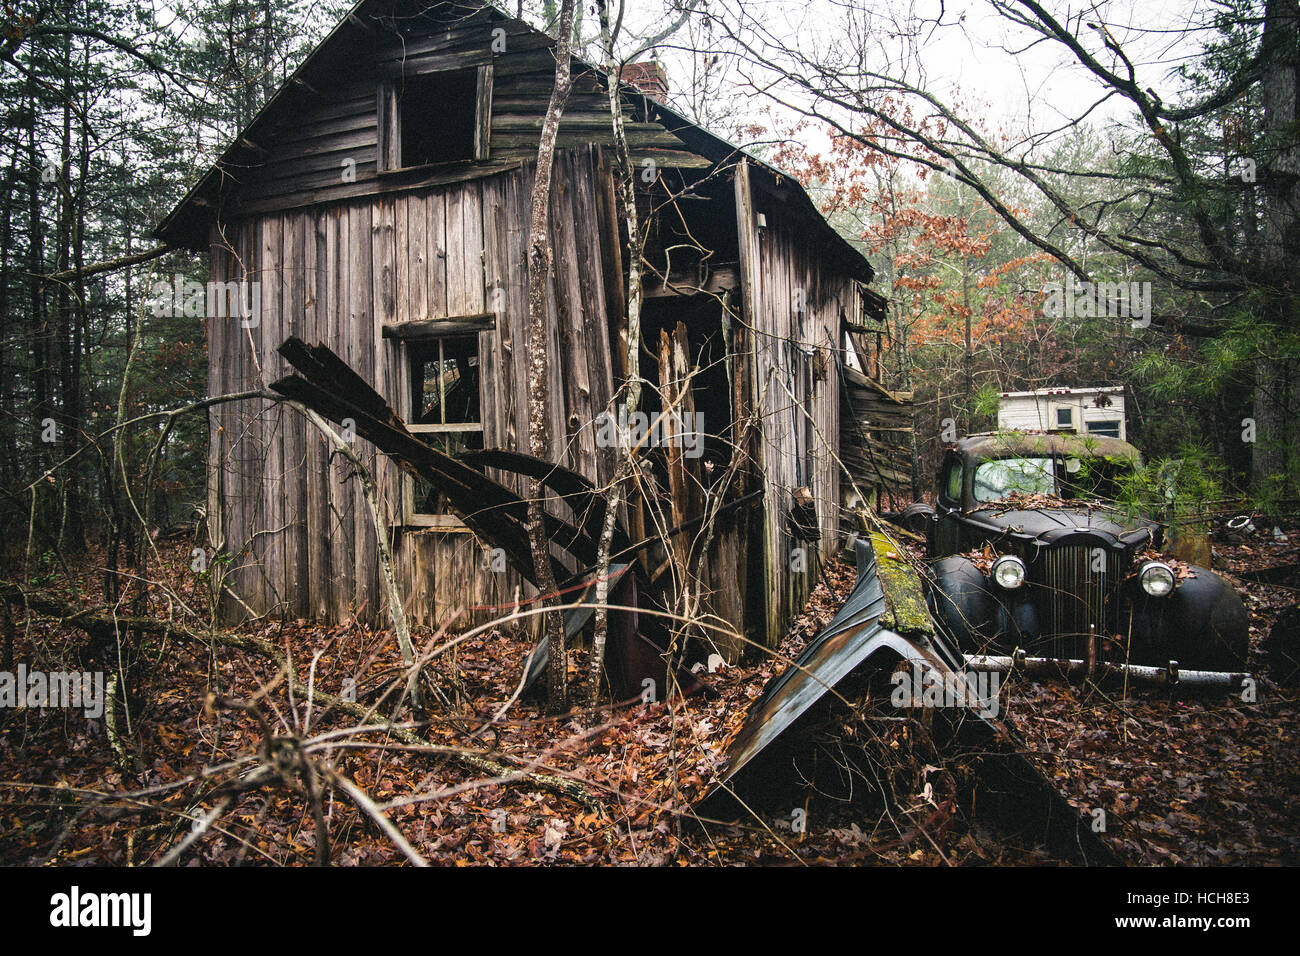 Abandoned, Overgrown House Falling Apart In The Woods, Beside An Antique Car